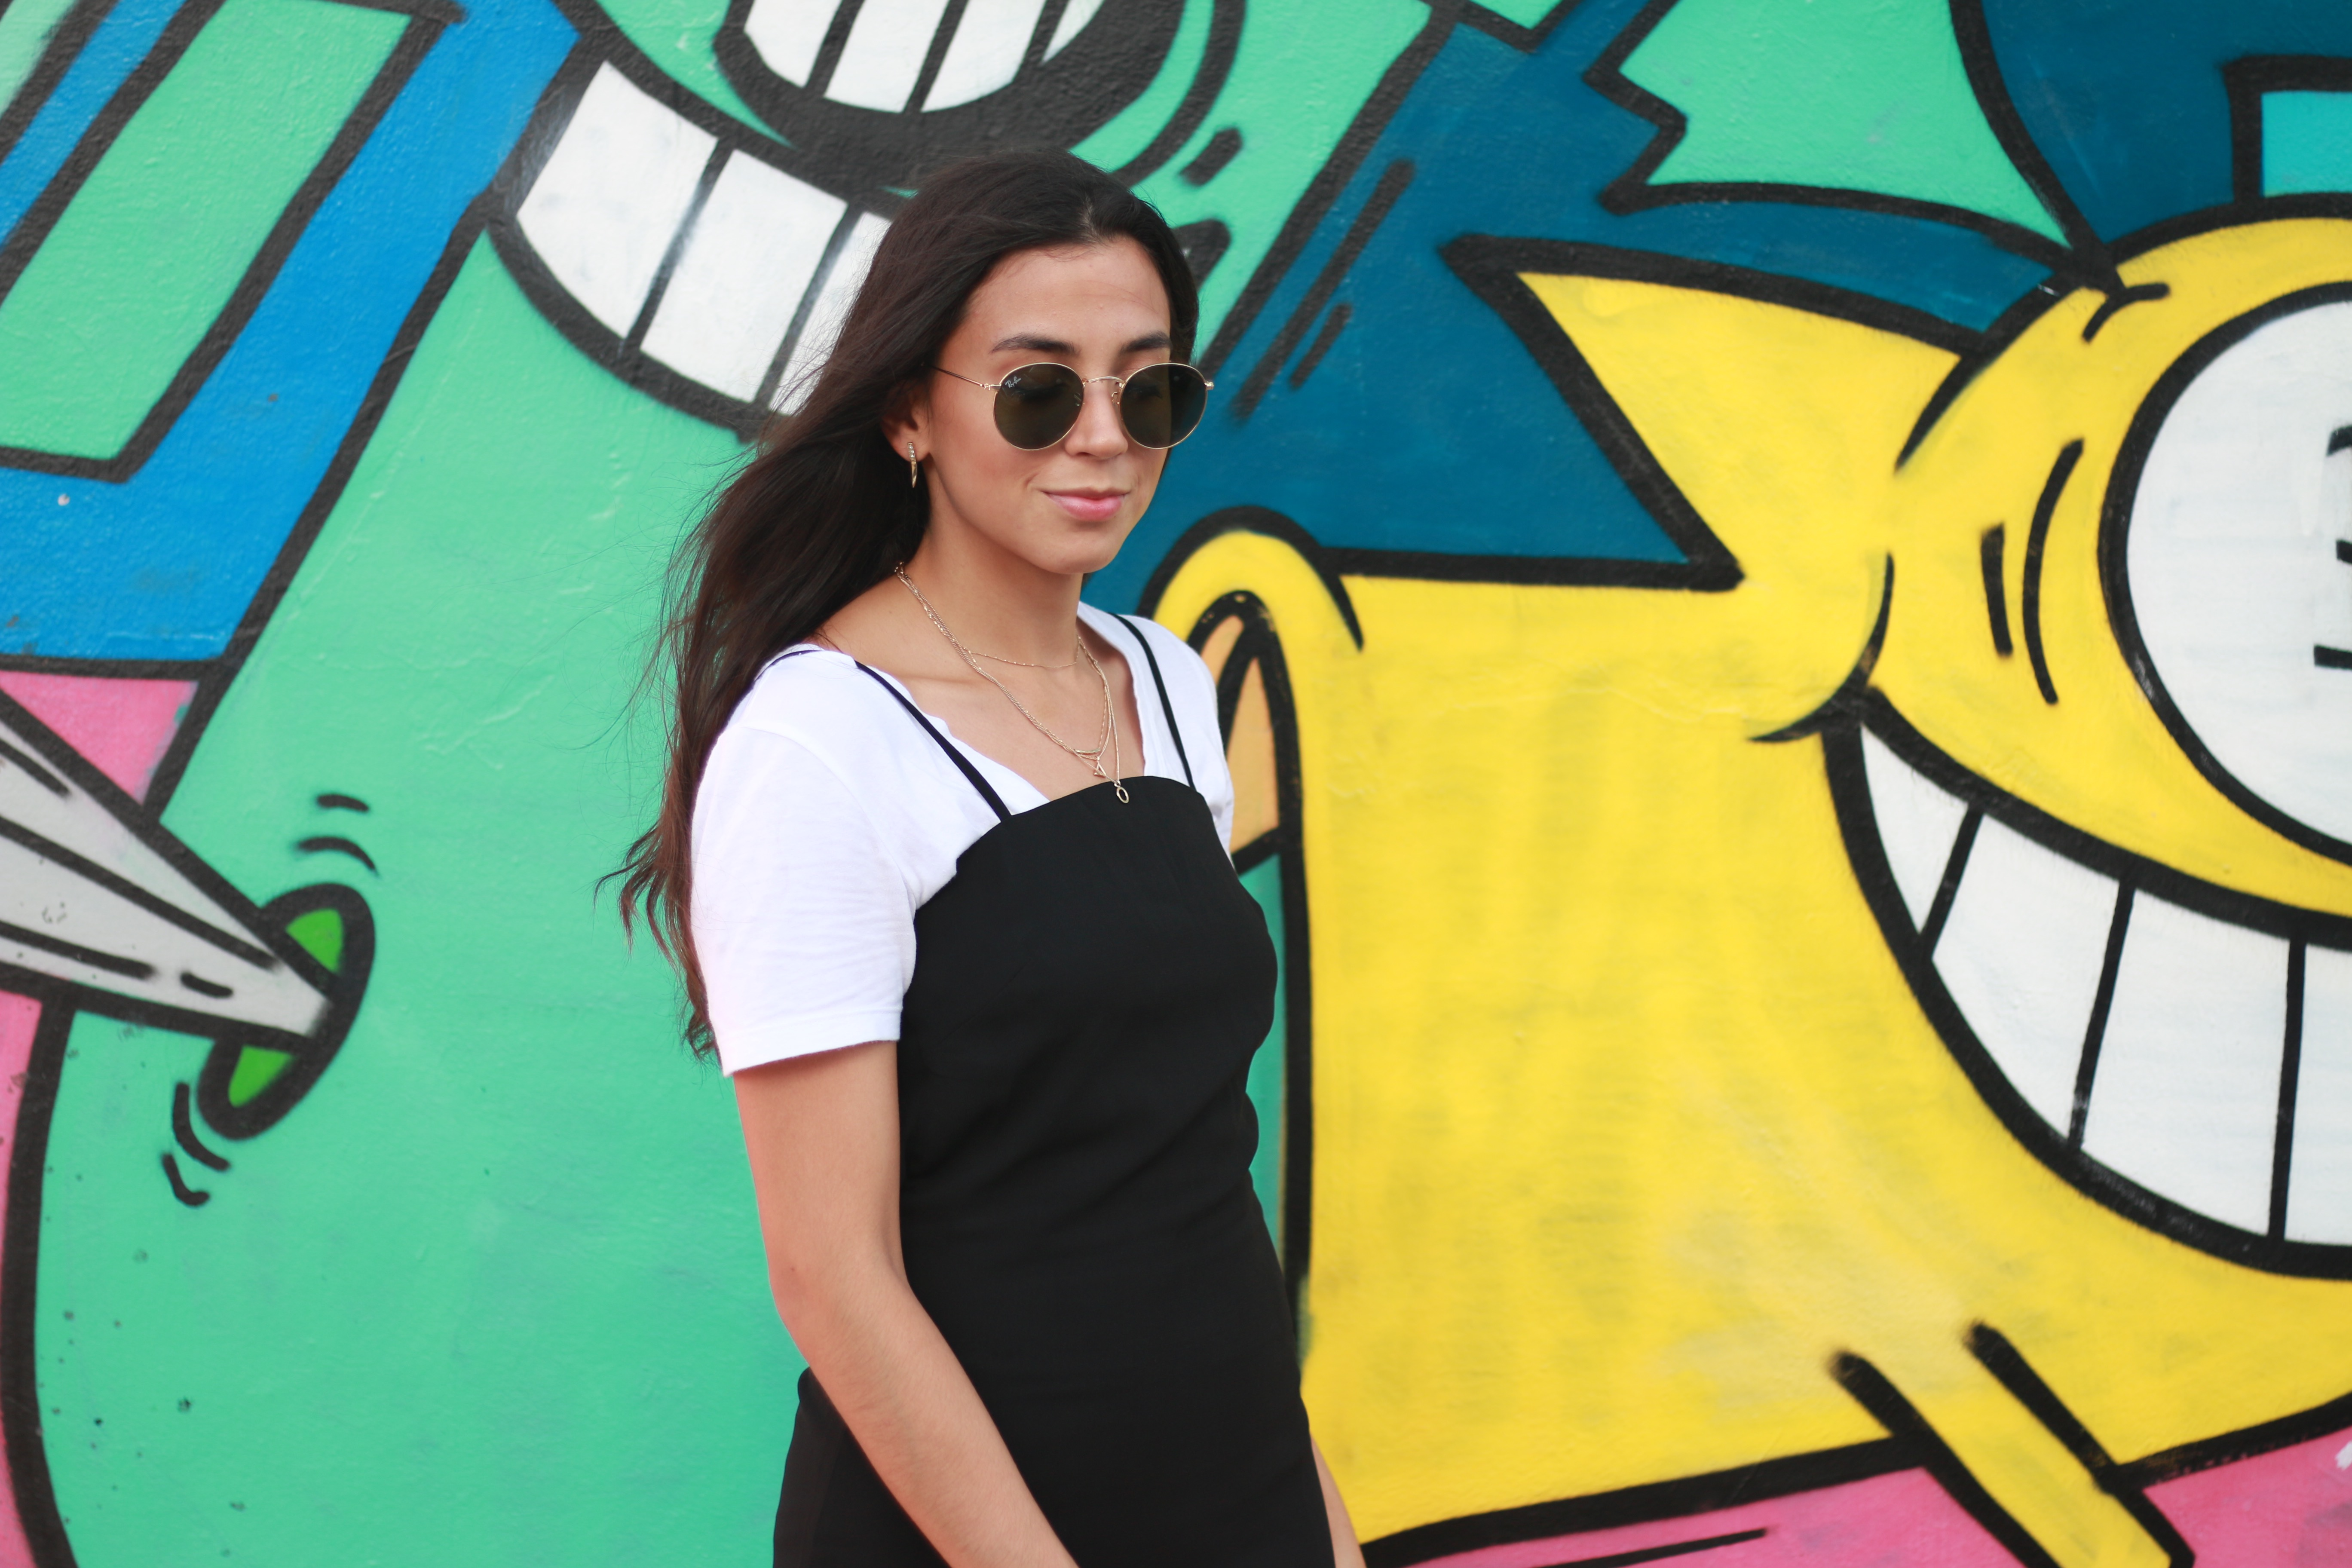 perrier-vibrant-wall-wynwood-miami